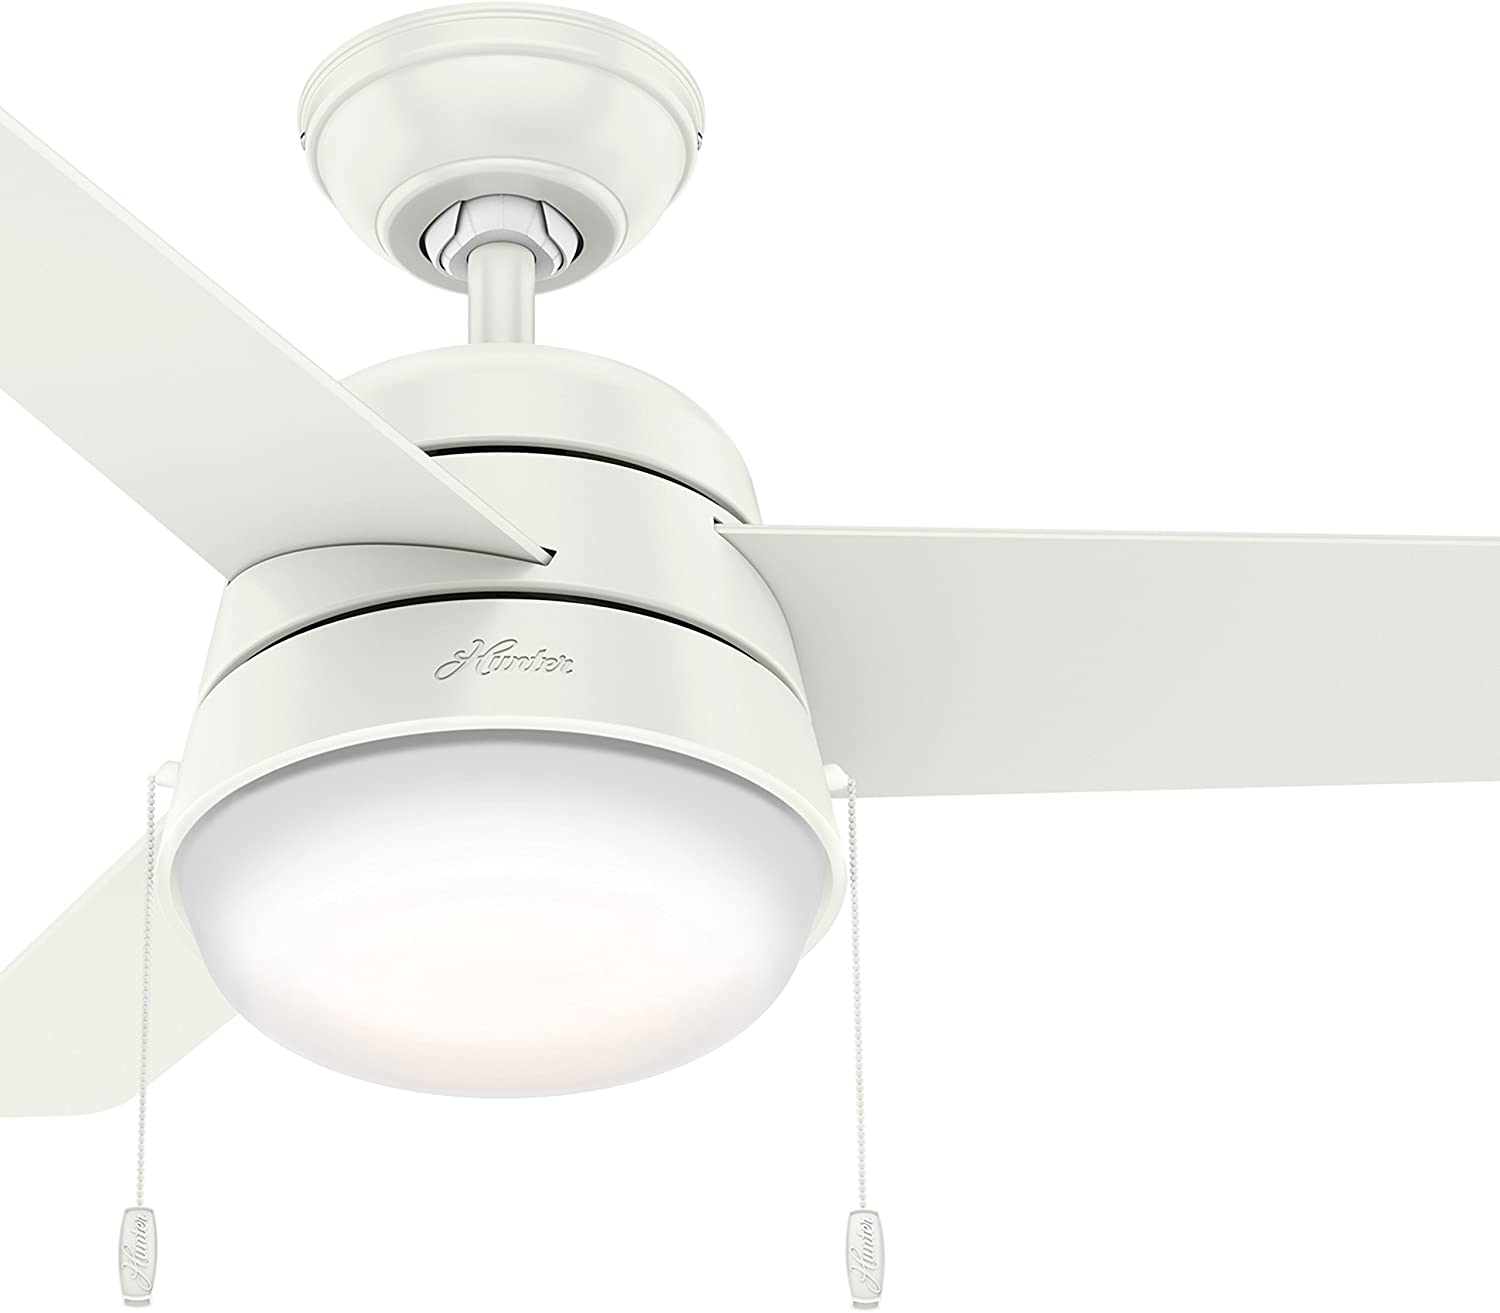 Hunter Fan 36 inch Ceiling Fan in Fresh White with Integrated LED Light Kit Renewed Fresh White